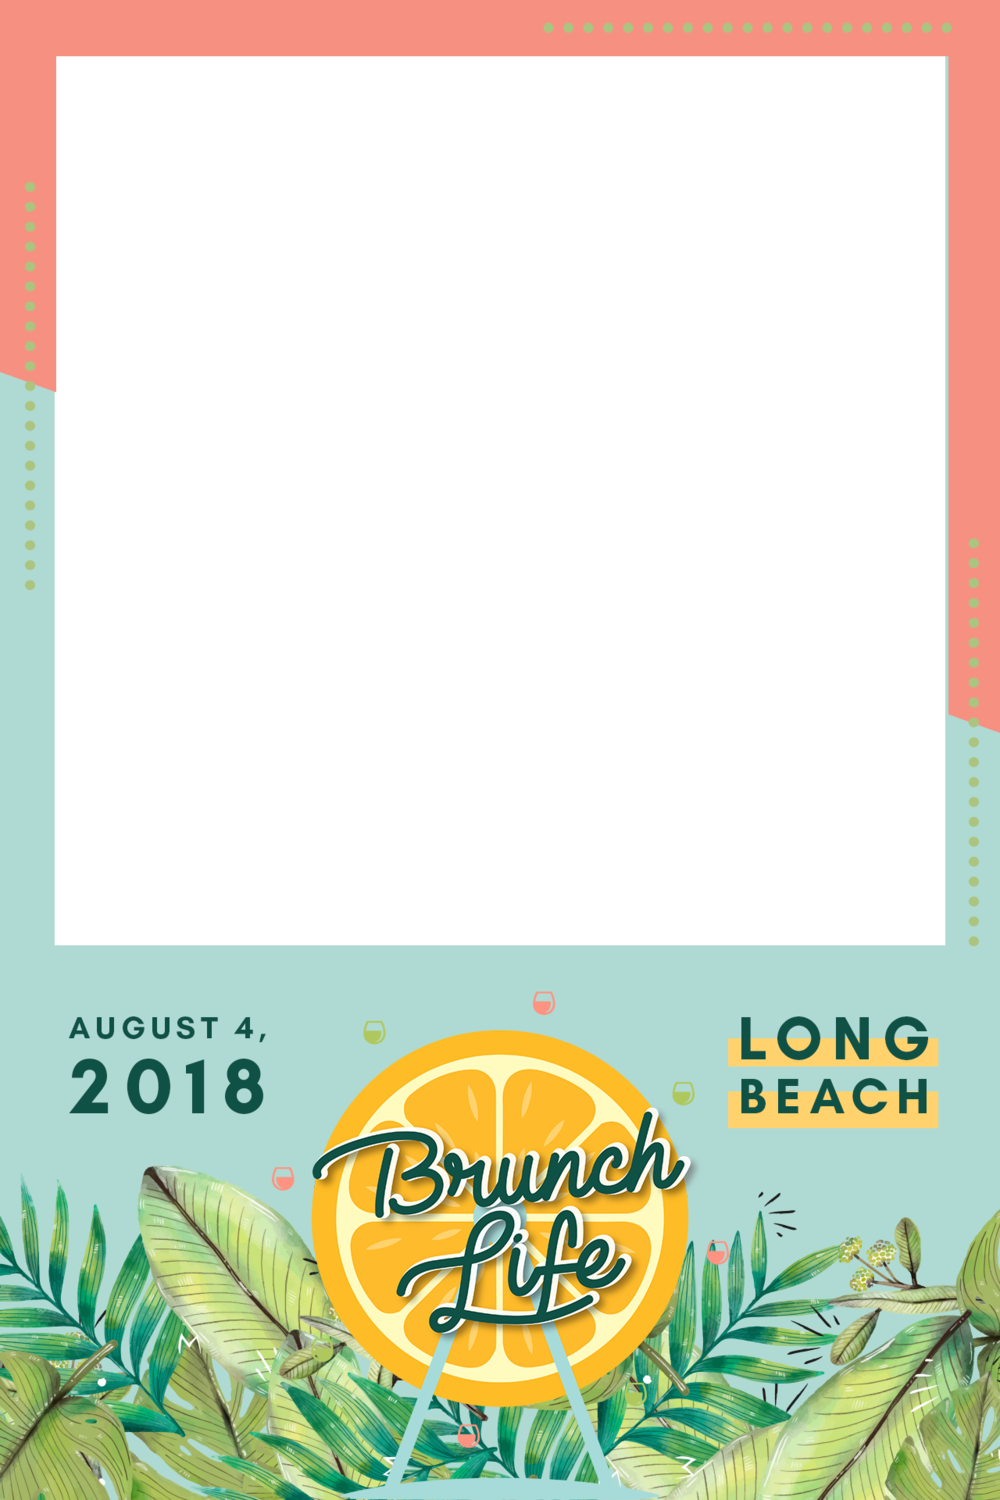 photobooth border 1 copy.png